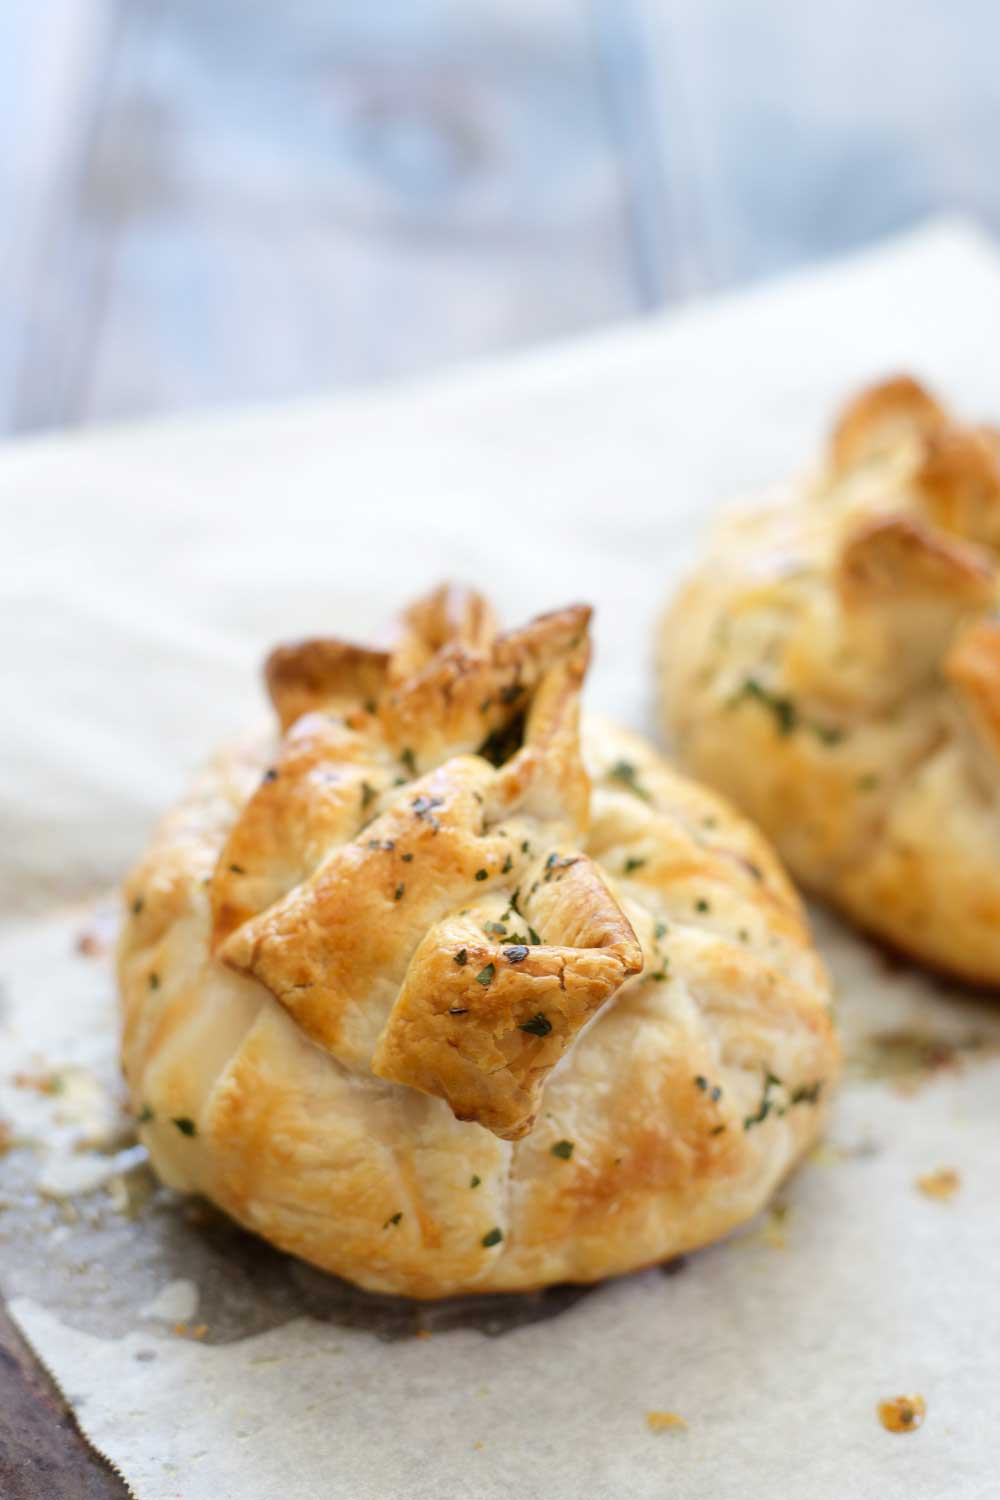 Garlic Chicken Parcels are super easy and super impressive. Individual parcels, filled with juicy chicken and oozing with garlic butter. They are perfect for entertaining as they can be prepared ahead of time and then just popped in the oven to cook when you sit down for appetisers.